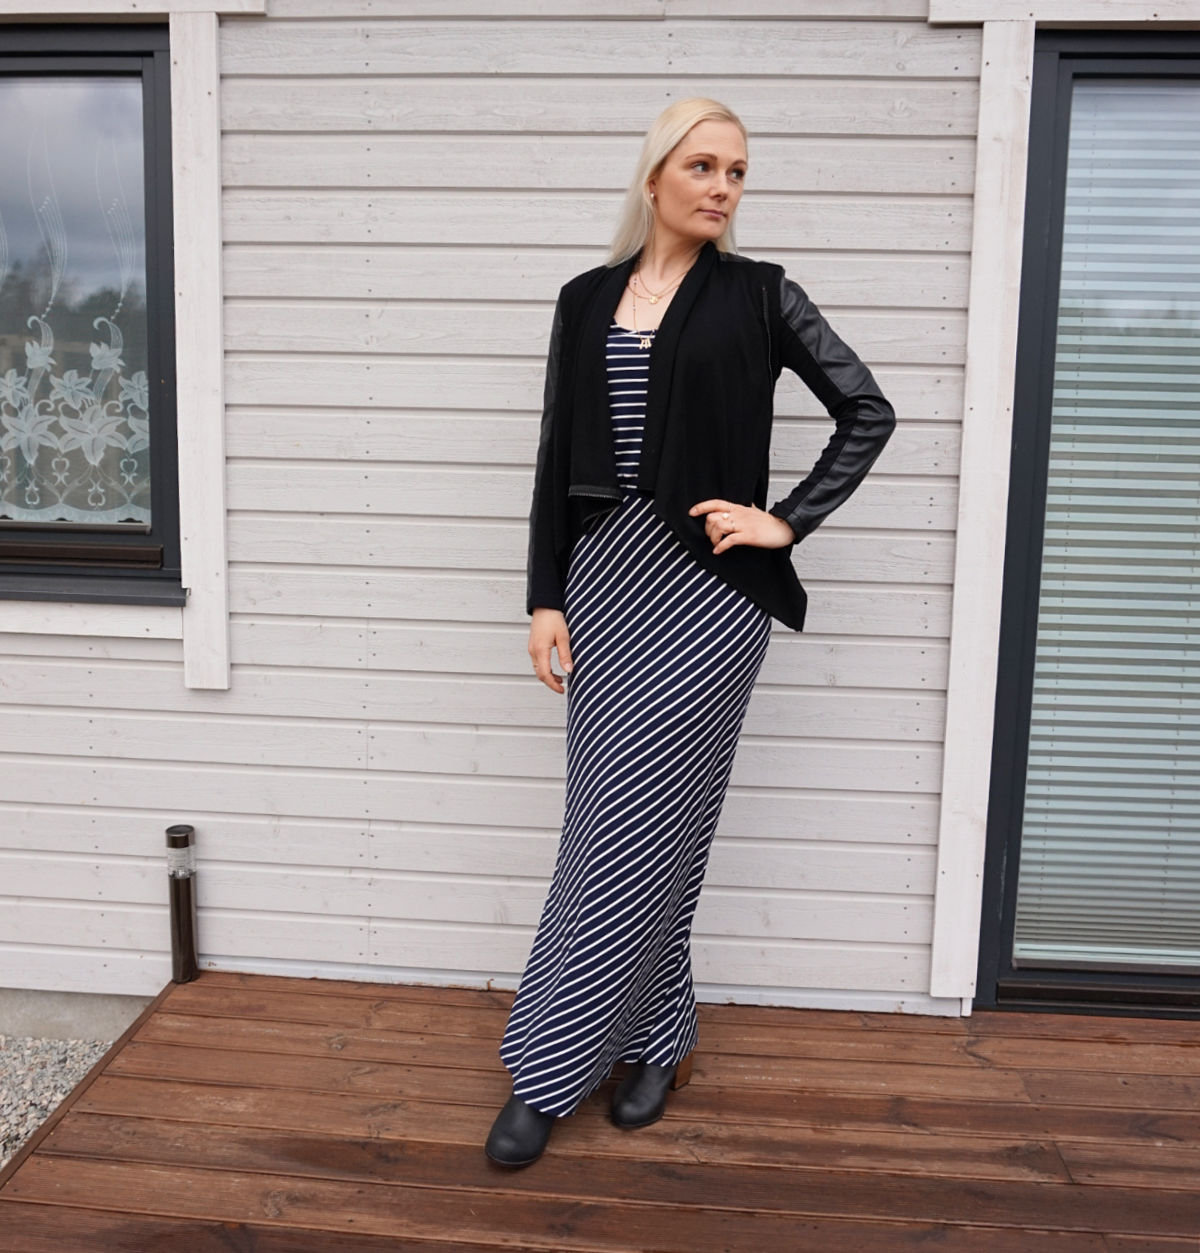 Navy and white striped maxi dress paired with a black vegan leather jacket and ankle booties.